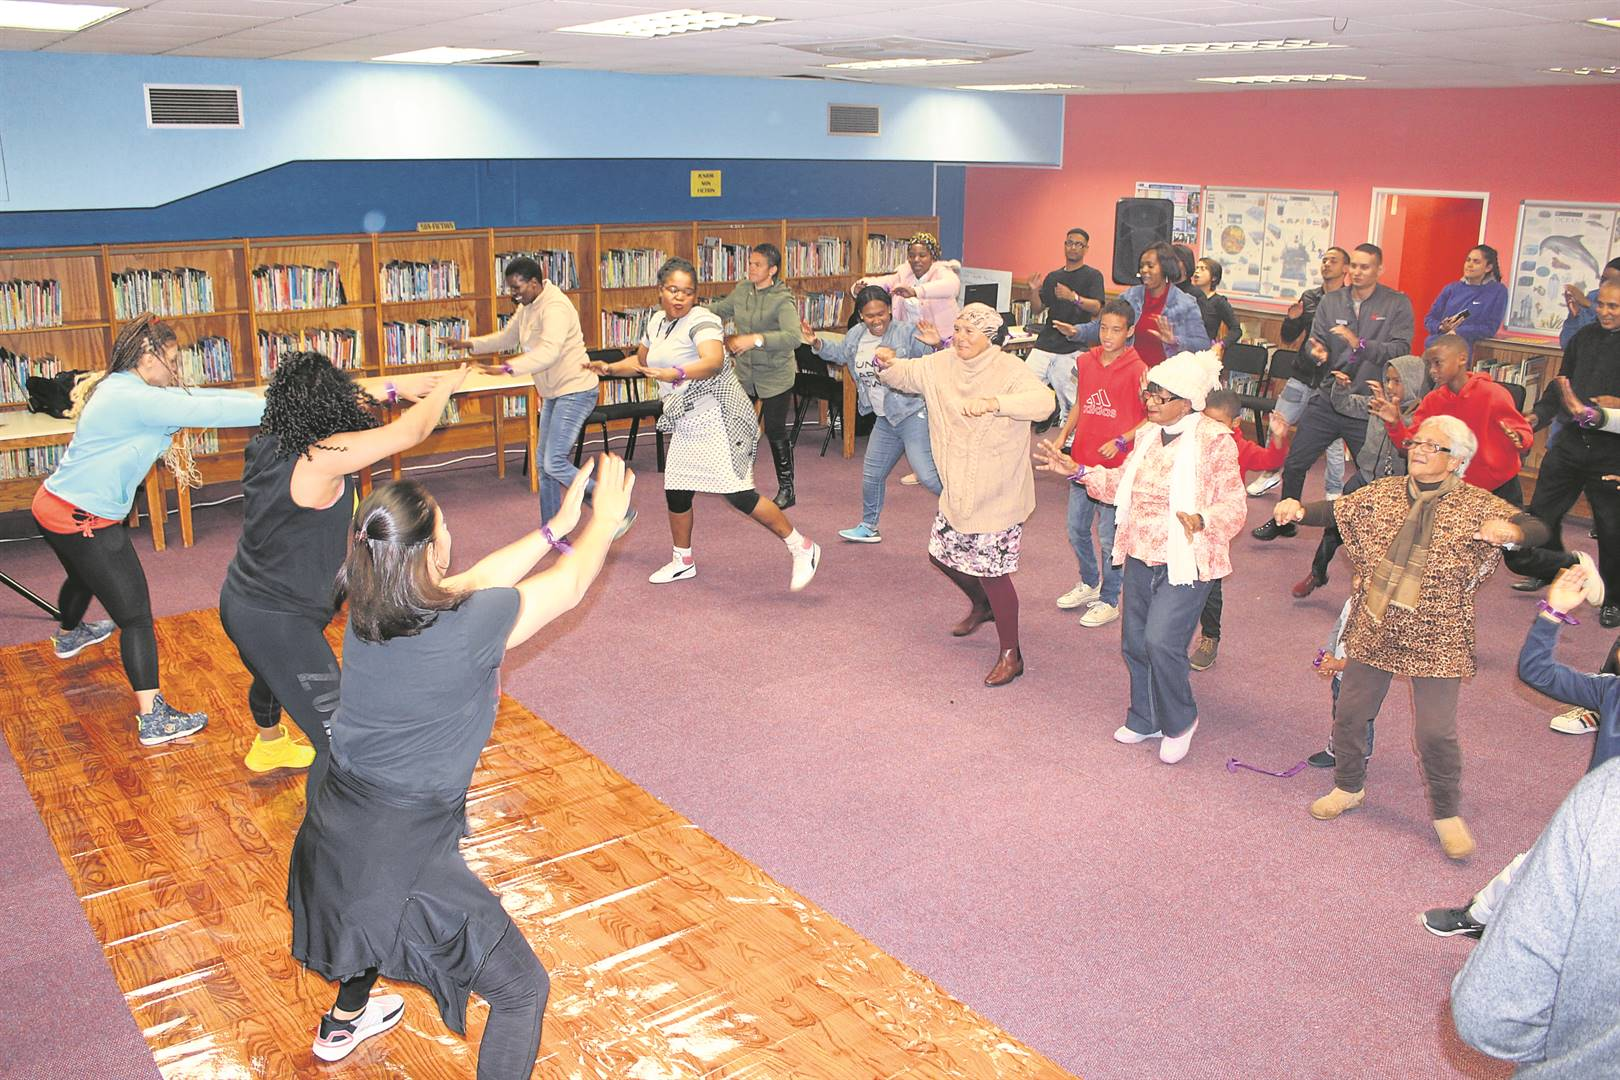 Cheer and fun as attendees take part in Zumba PHOTO: siphesihle notwabaza